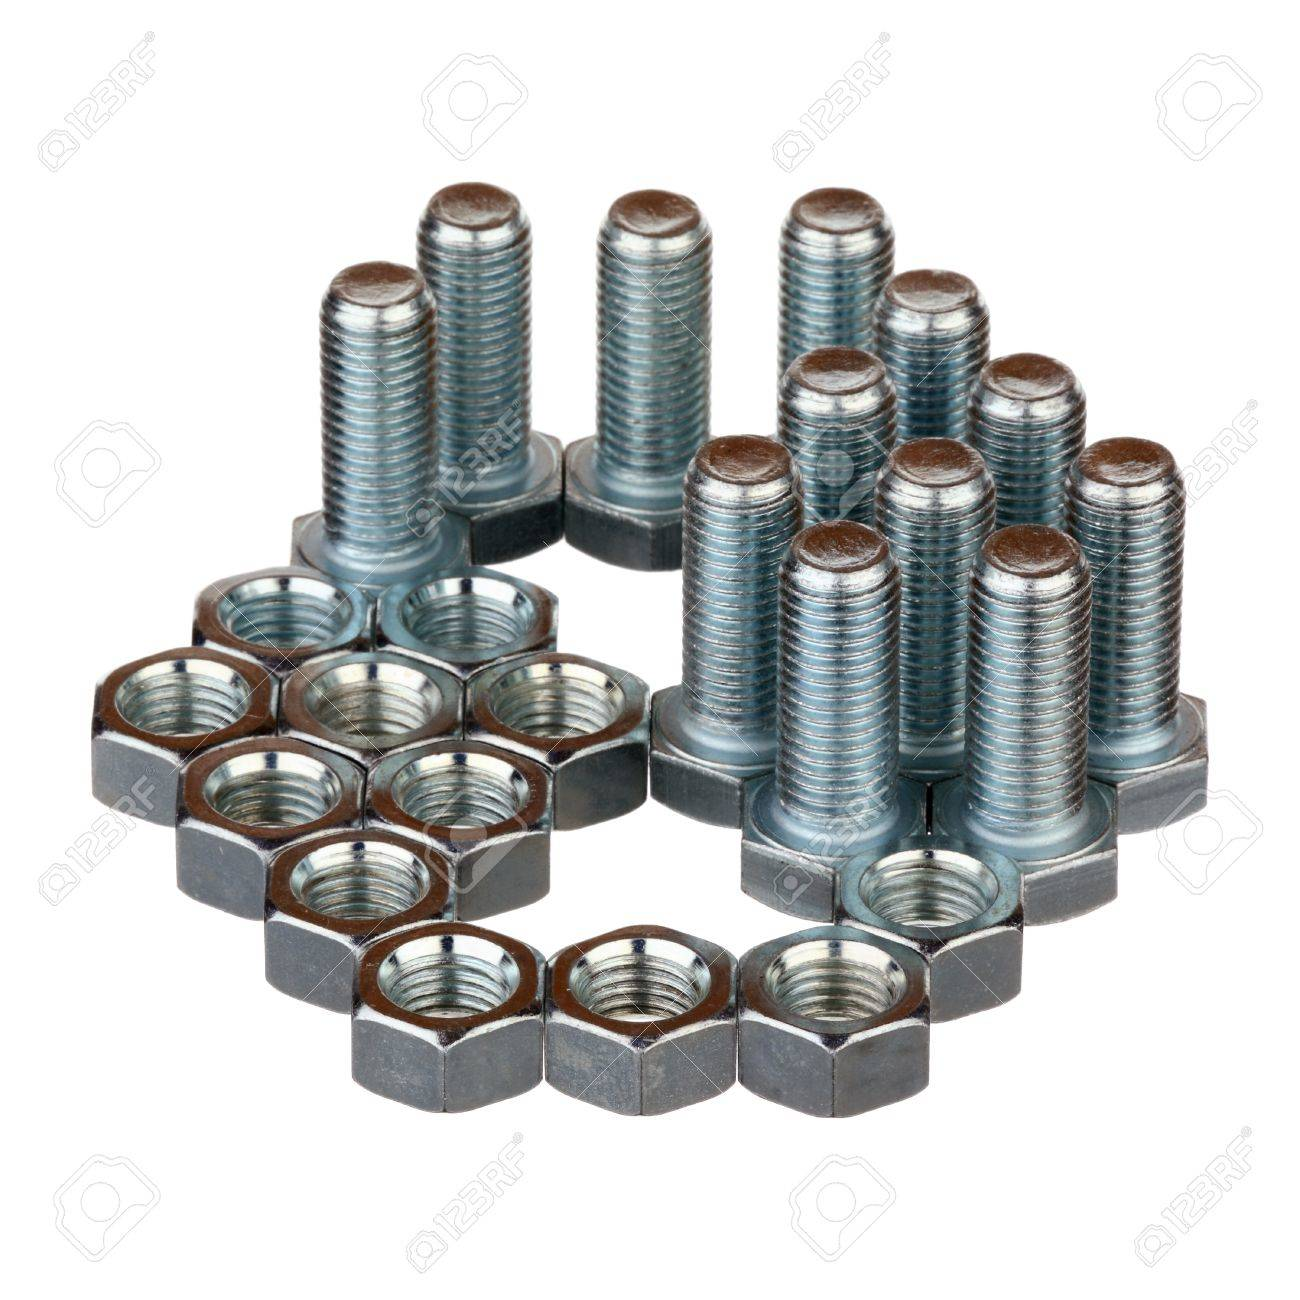 Screw bolts and nuts isolated over white background Stock Photo - 18760666